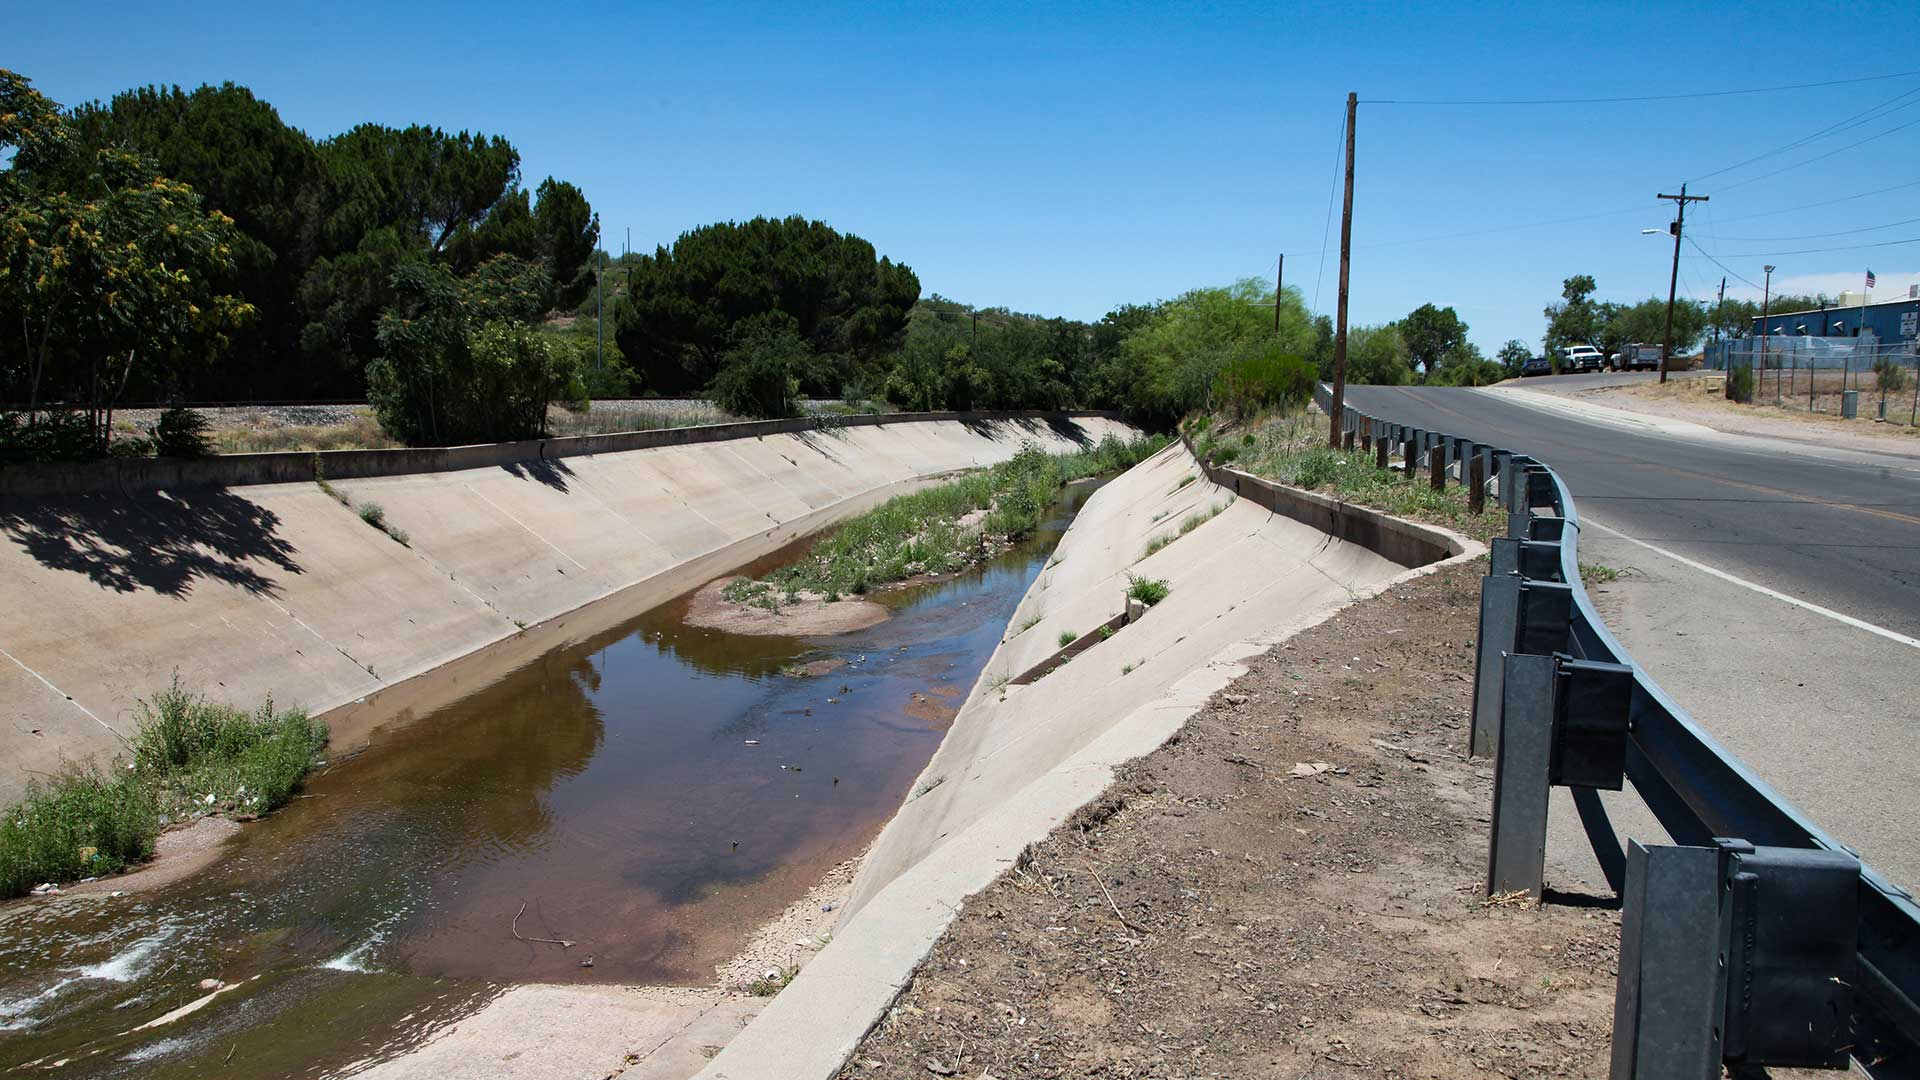 The International Outfall Interceptor, or IOI, runs under this concrete-lined wash through the city of Nogales, Ariz.